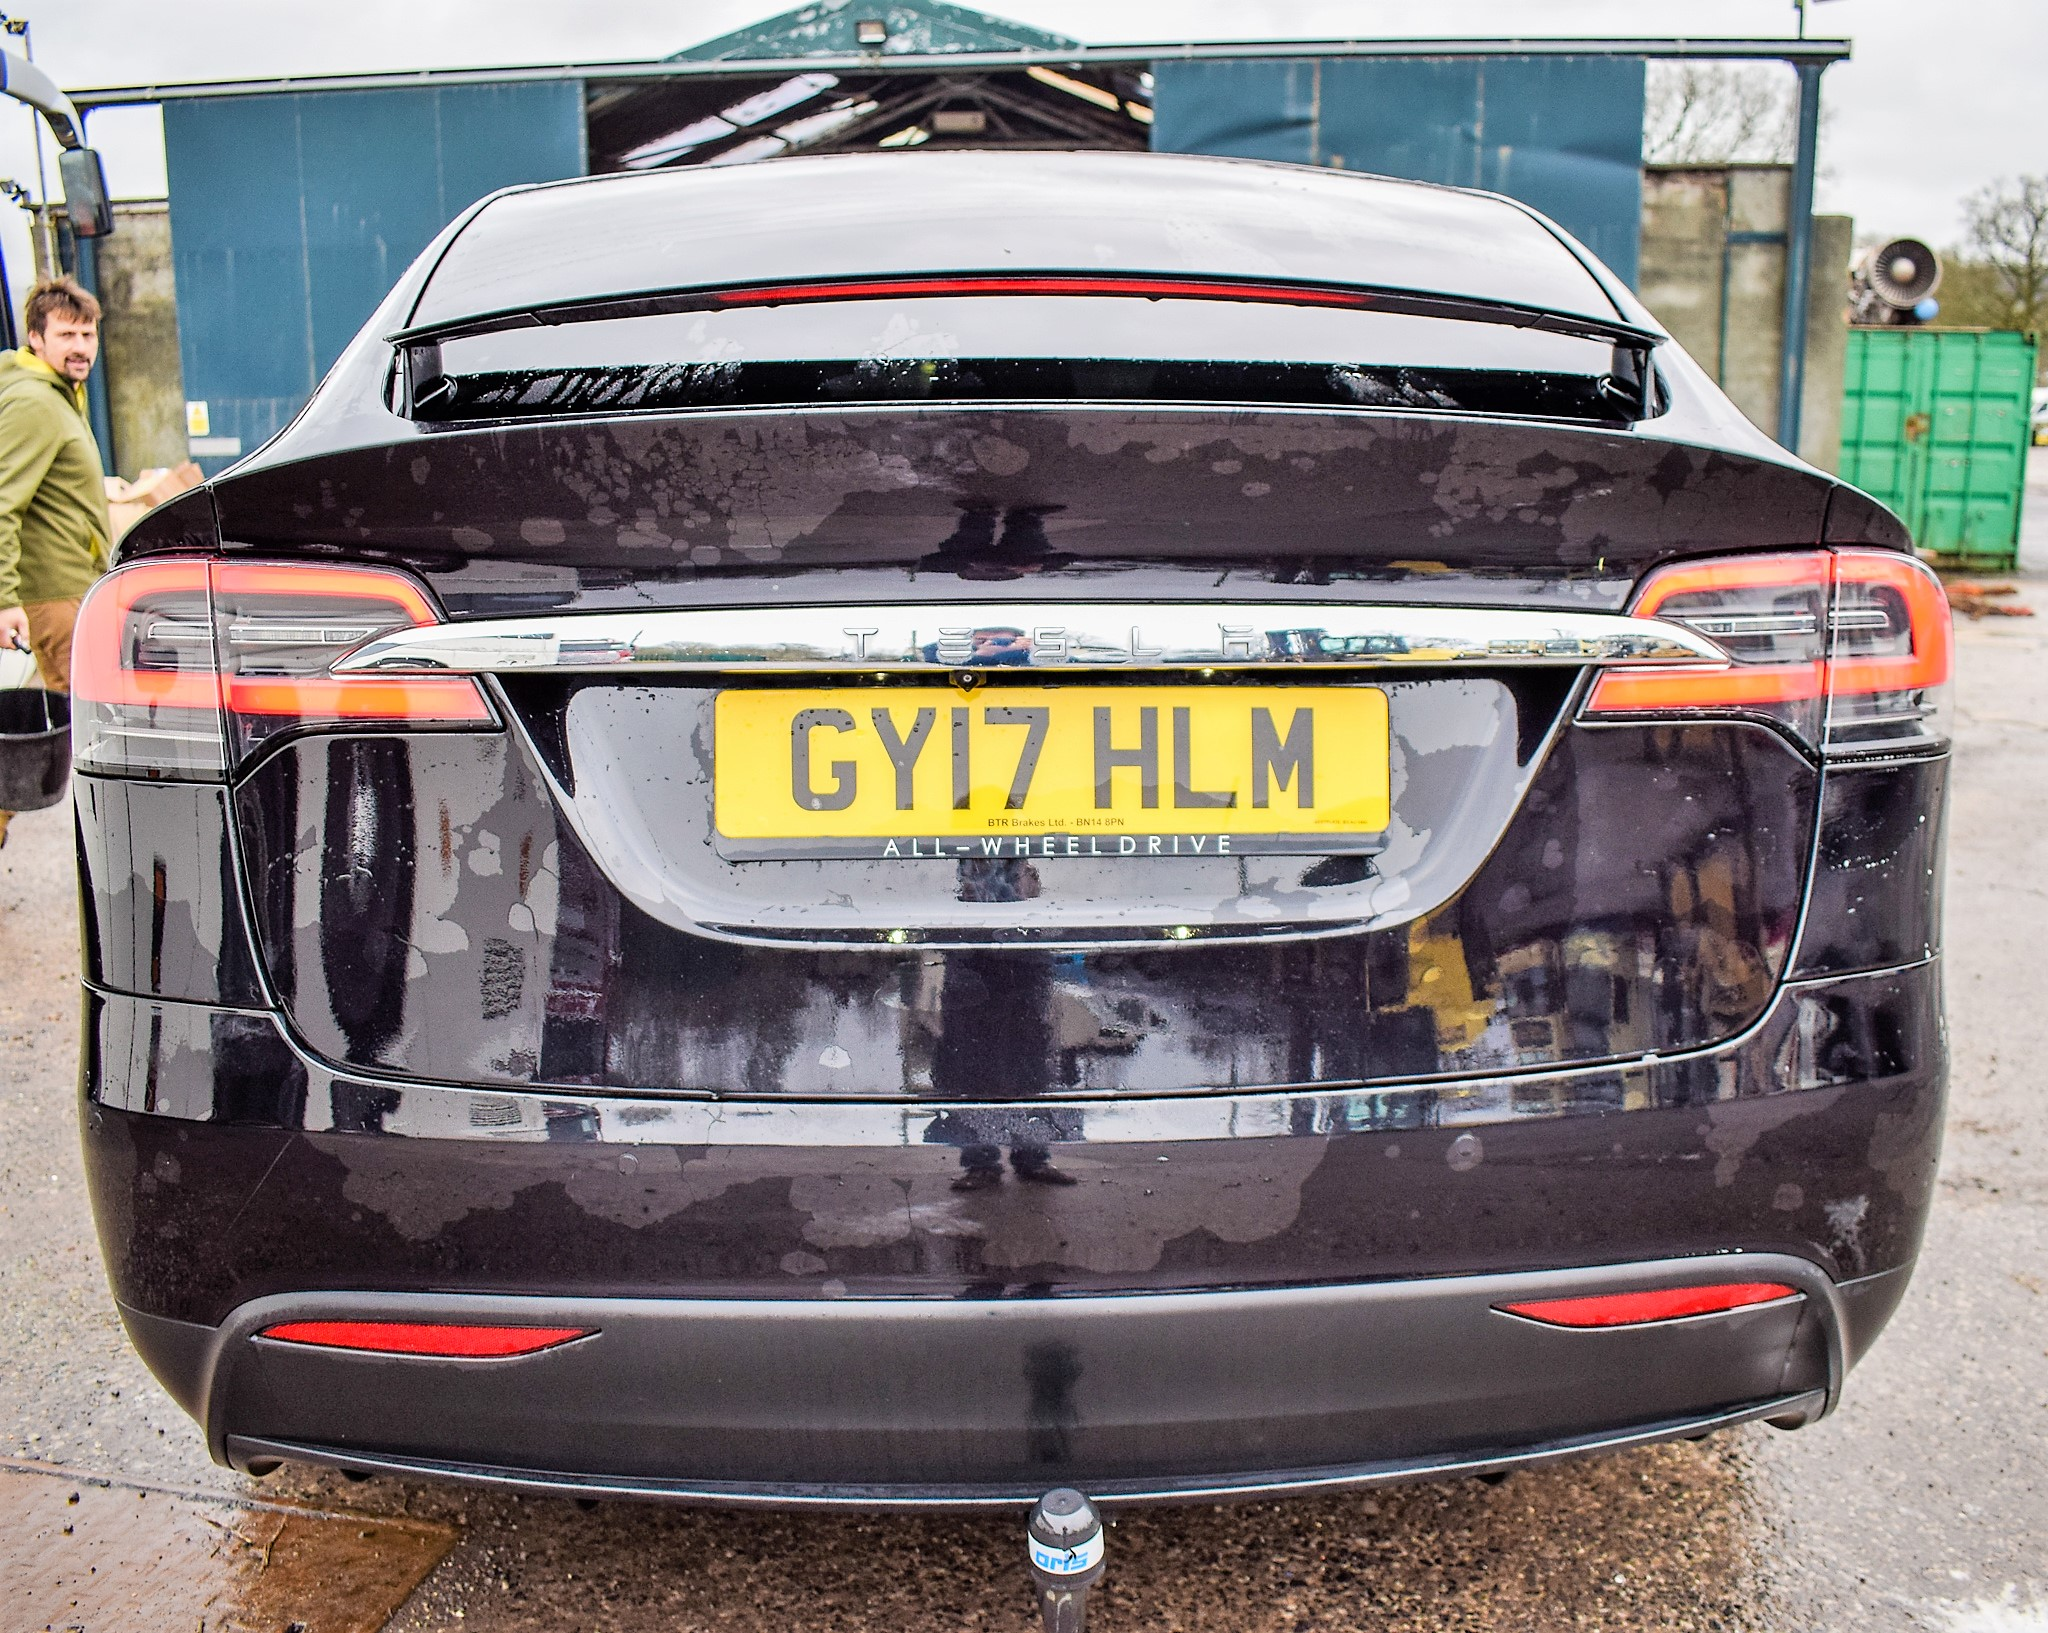 Lot 19A - Tesla Model X 90 D dual motor 7 seat battery electric SUV Registration Number: GY17 HLM Date of